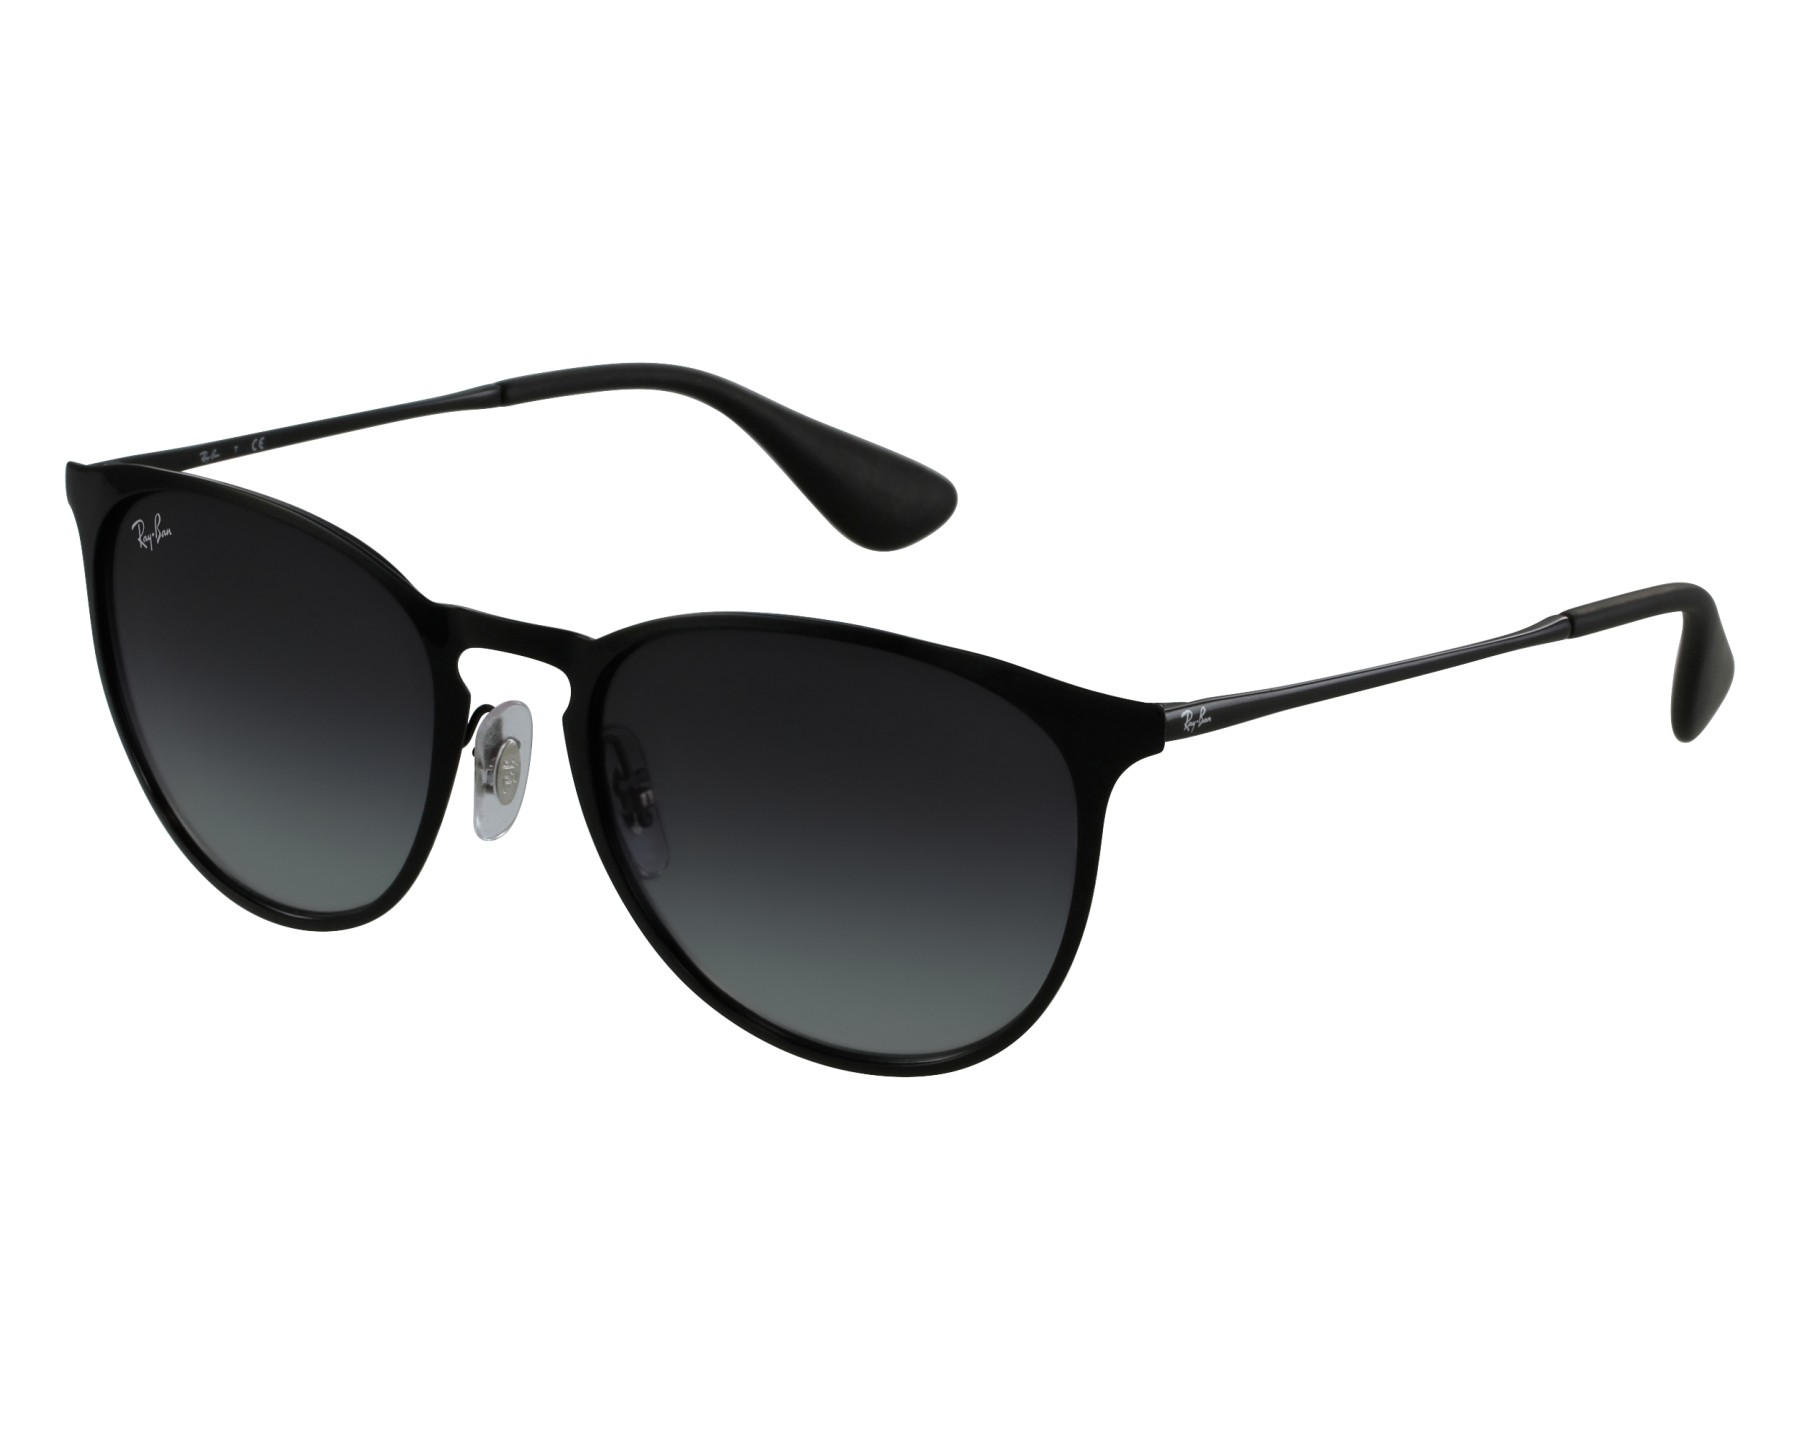 Sunglasses Ray-Ban RB-3539 002 8G 54-19 Black front view 32ee380443fb